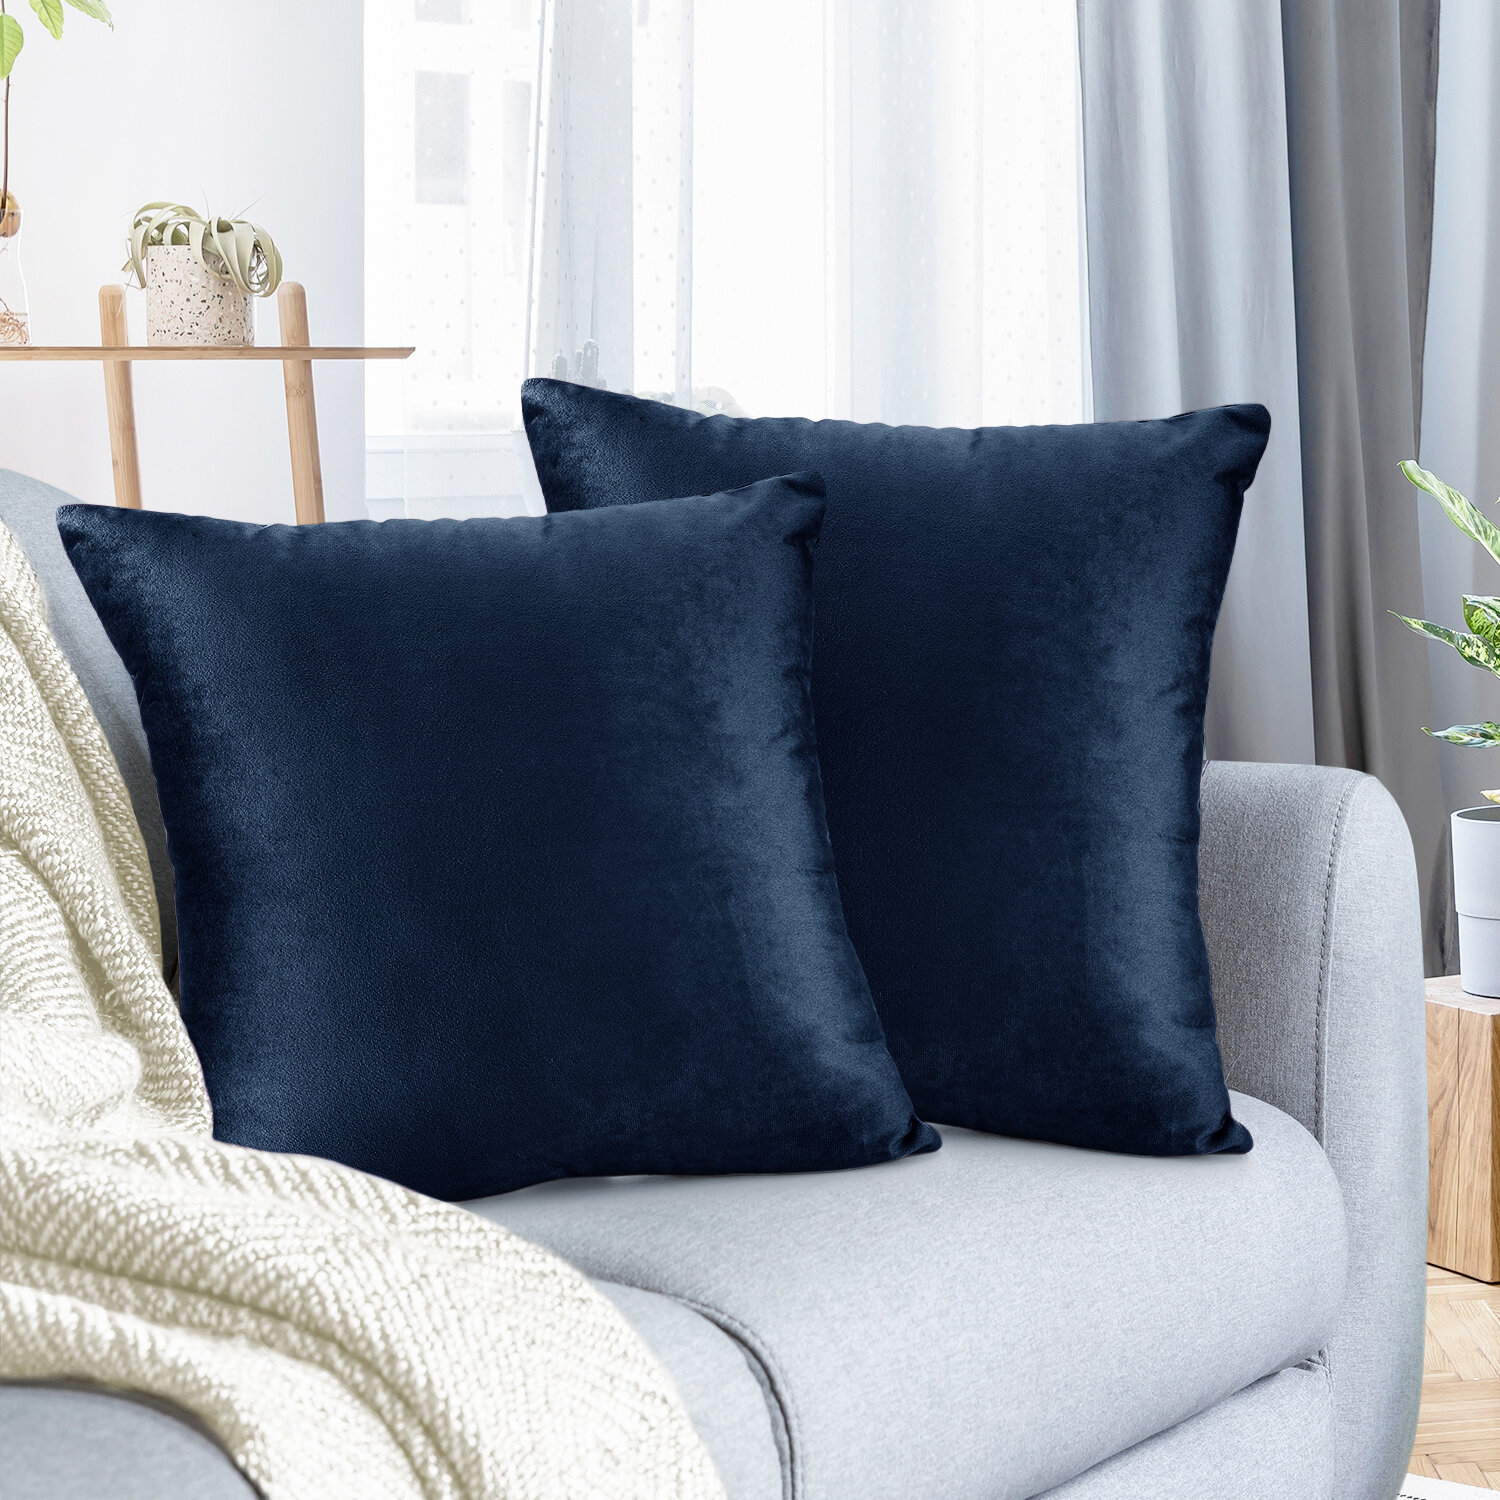 Navy Throw Pillows You Ll Love In 2021 Wayfair